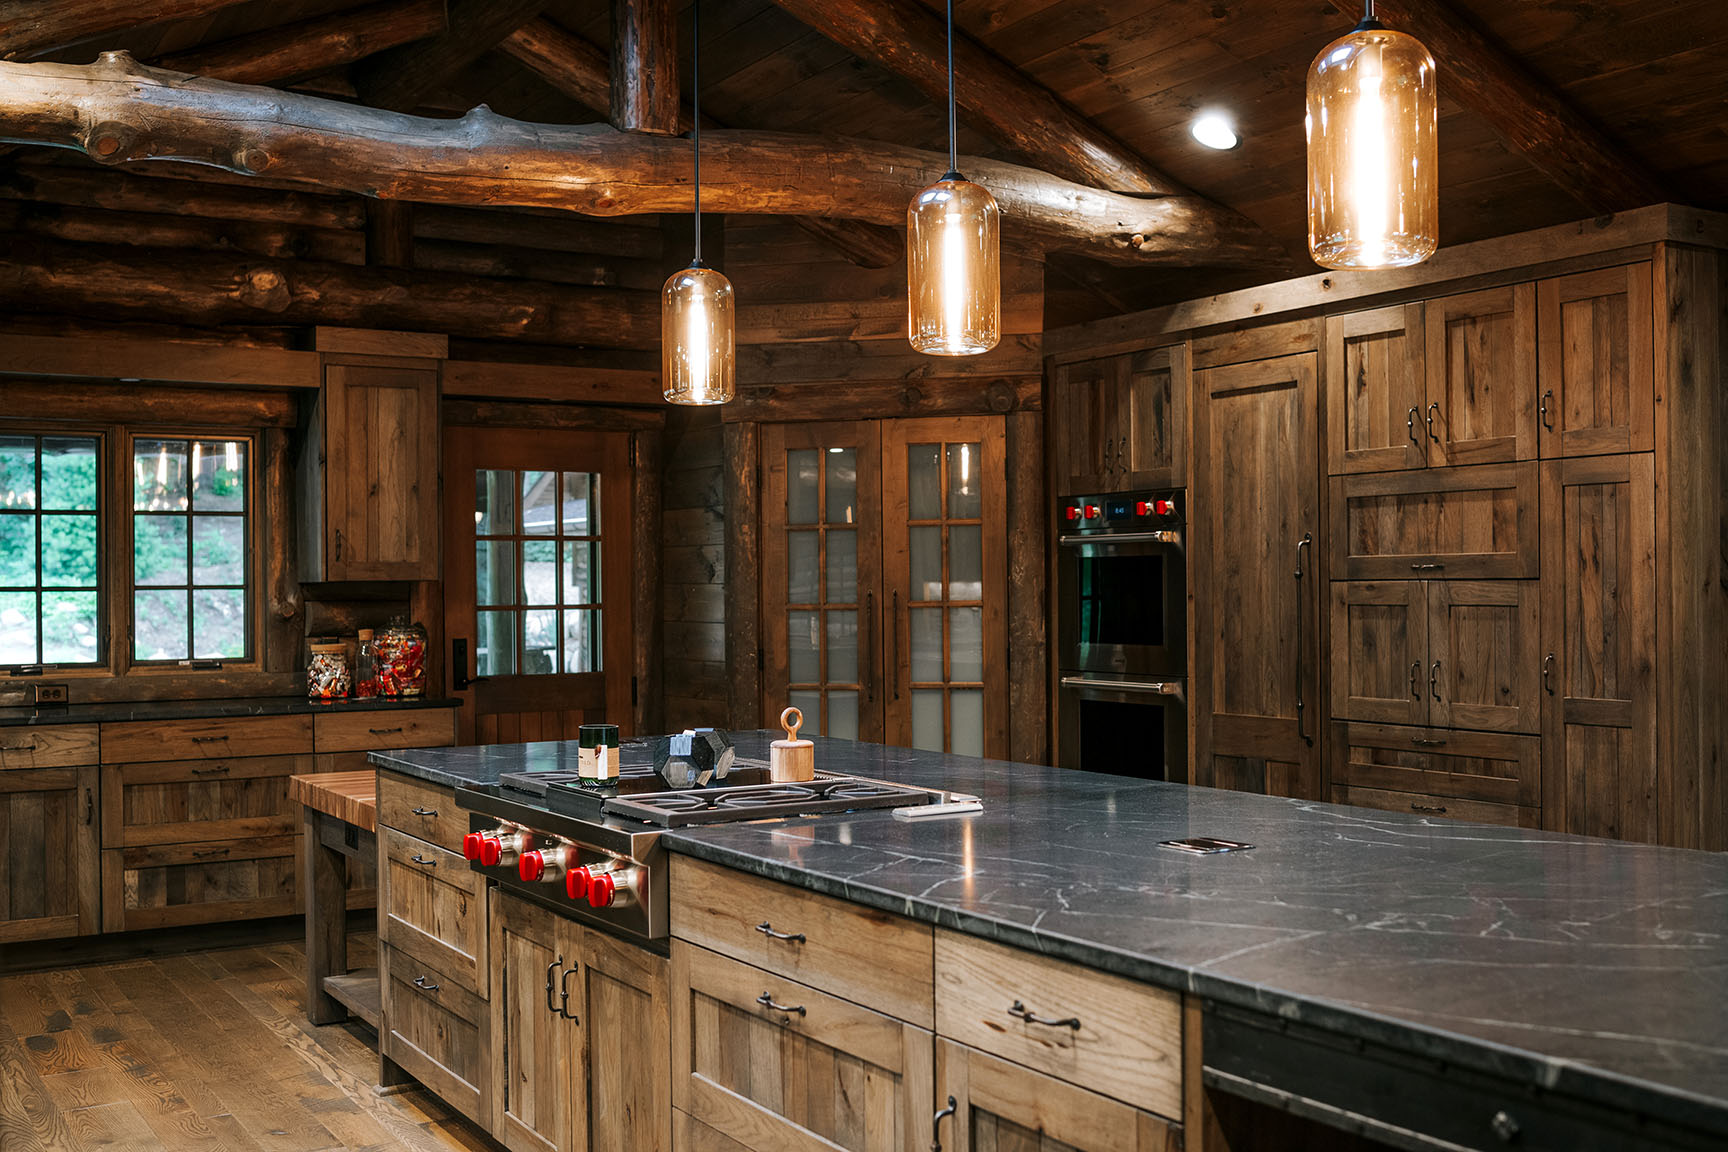 Distressed Rustic Hickory Kitchen Cabinets With Shiplap Panel Inserts And Wire Mesh Uppers Farm Sink